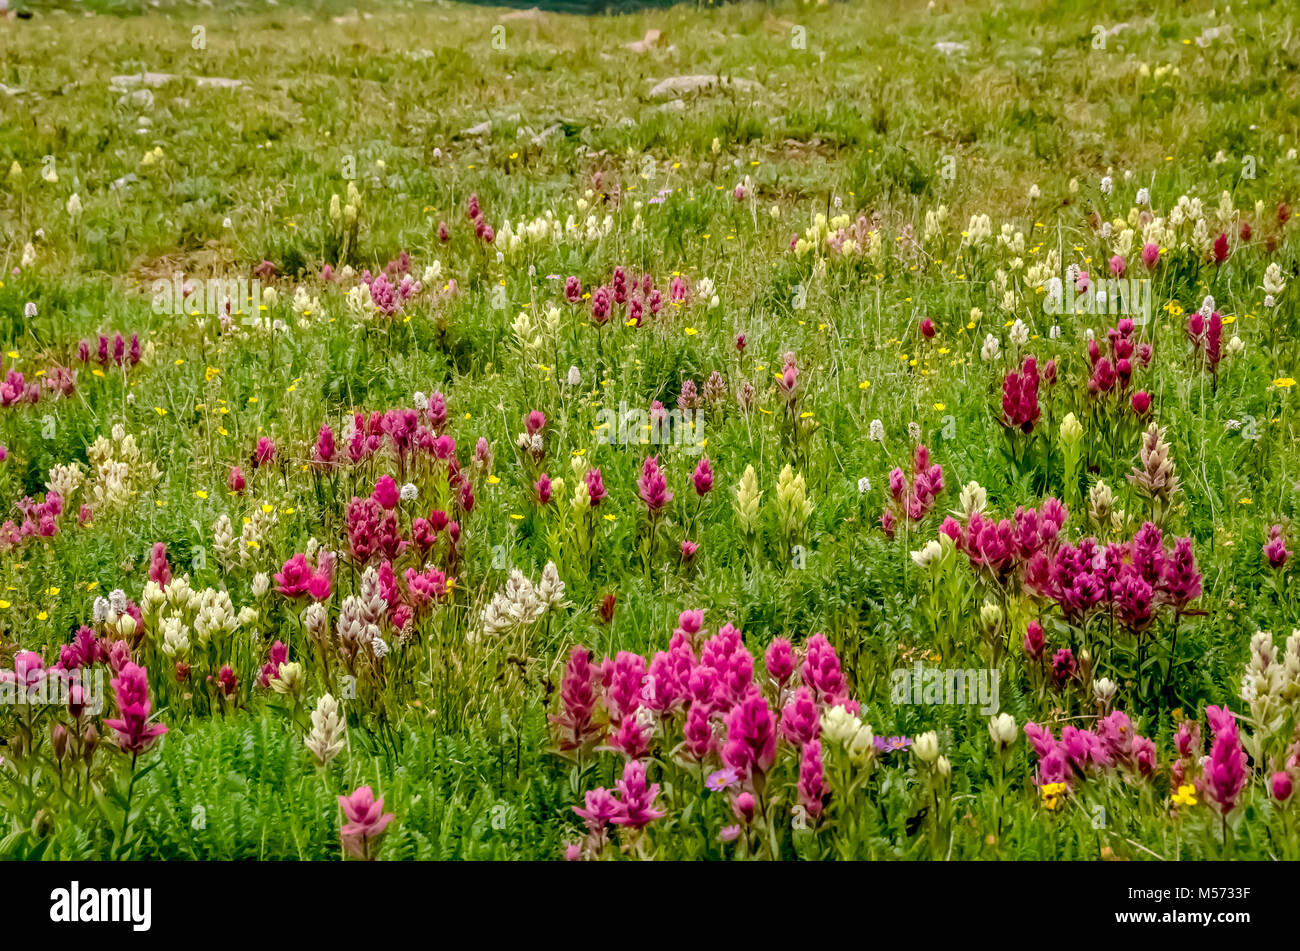 Field of summer wildflowers in Crested Butte, Colorado - Stock Image